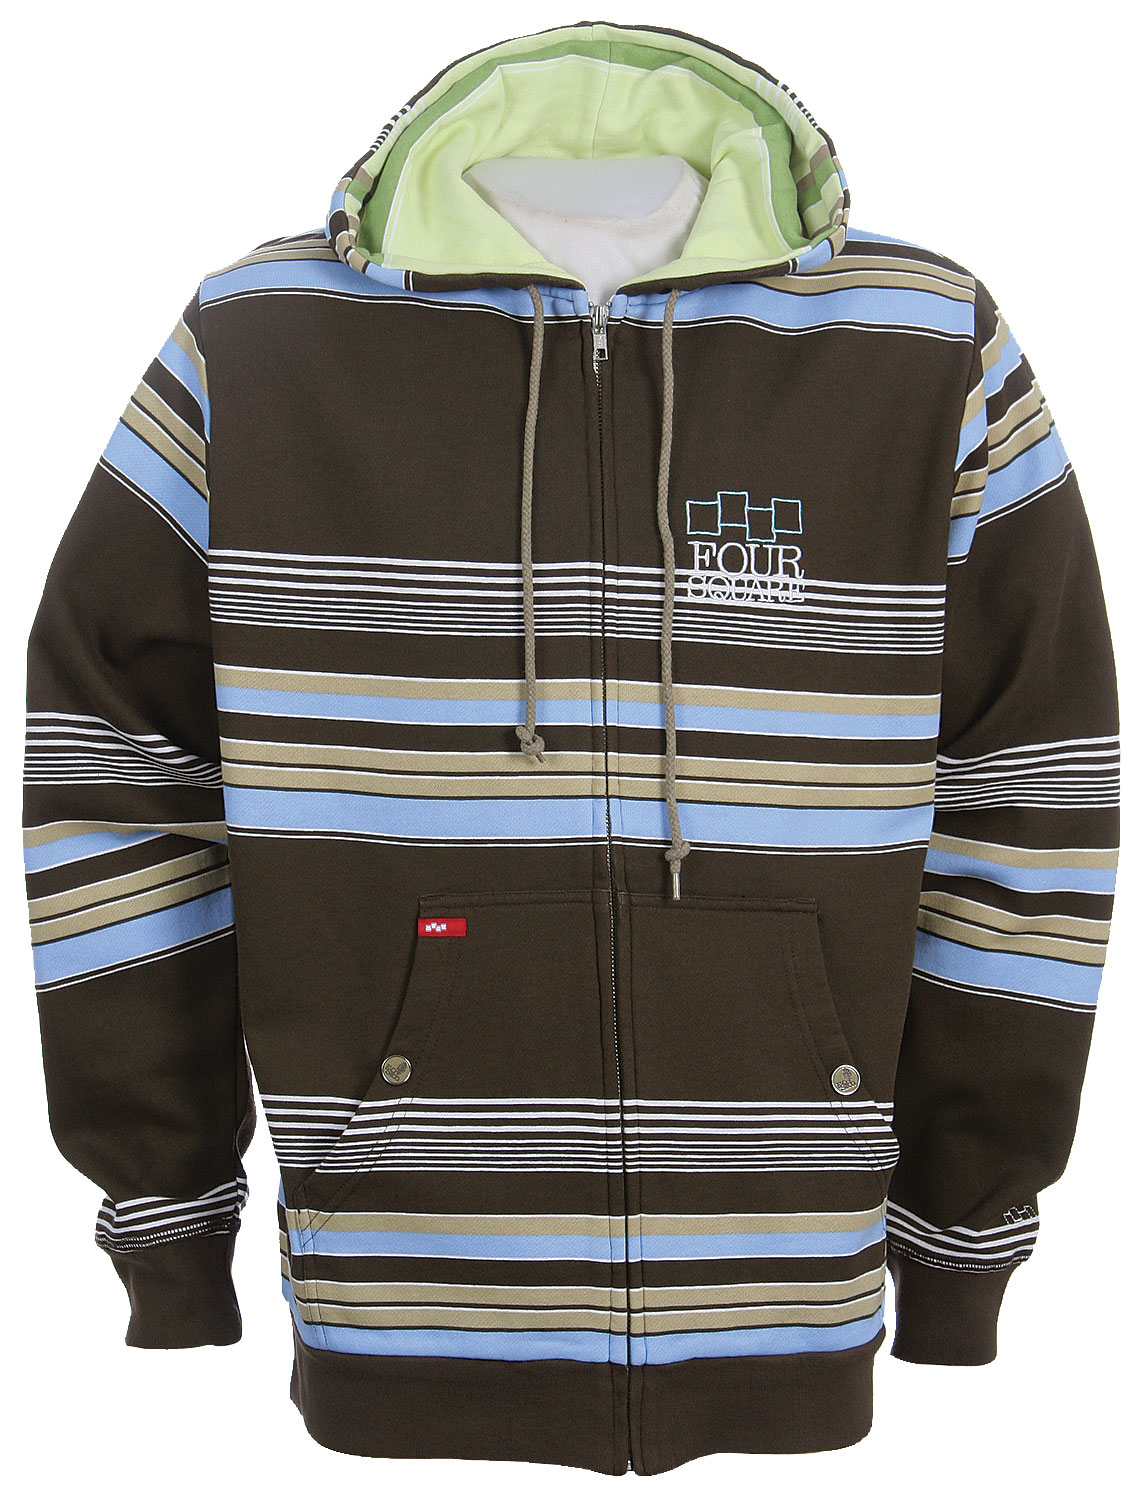 Snowboard All Over Print of Polo StripesIcon ChestSleeve Embroidery80% Cotton / 20% Polyester 360 gram - $27.95